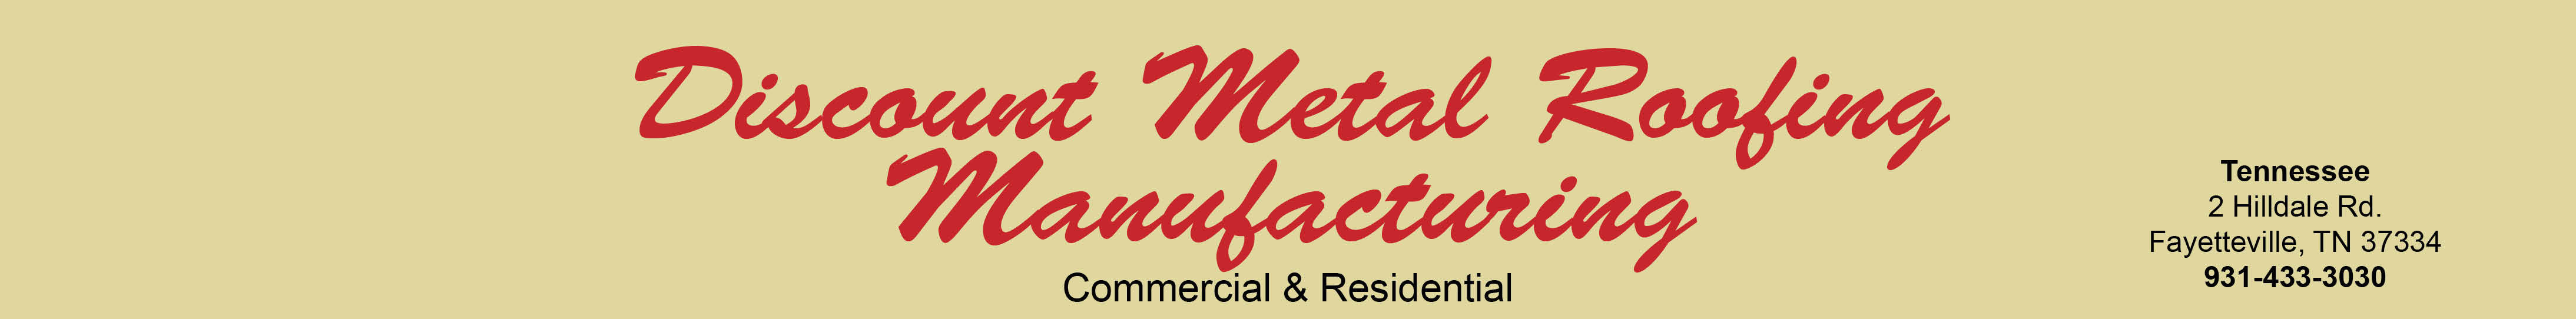 Discount Metal Roofing